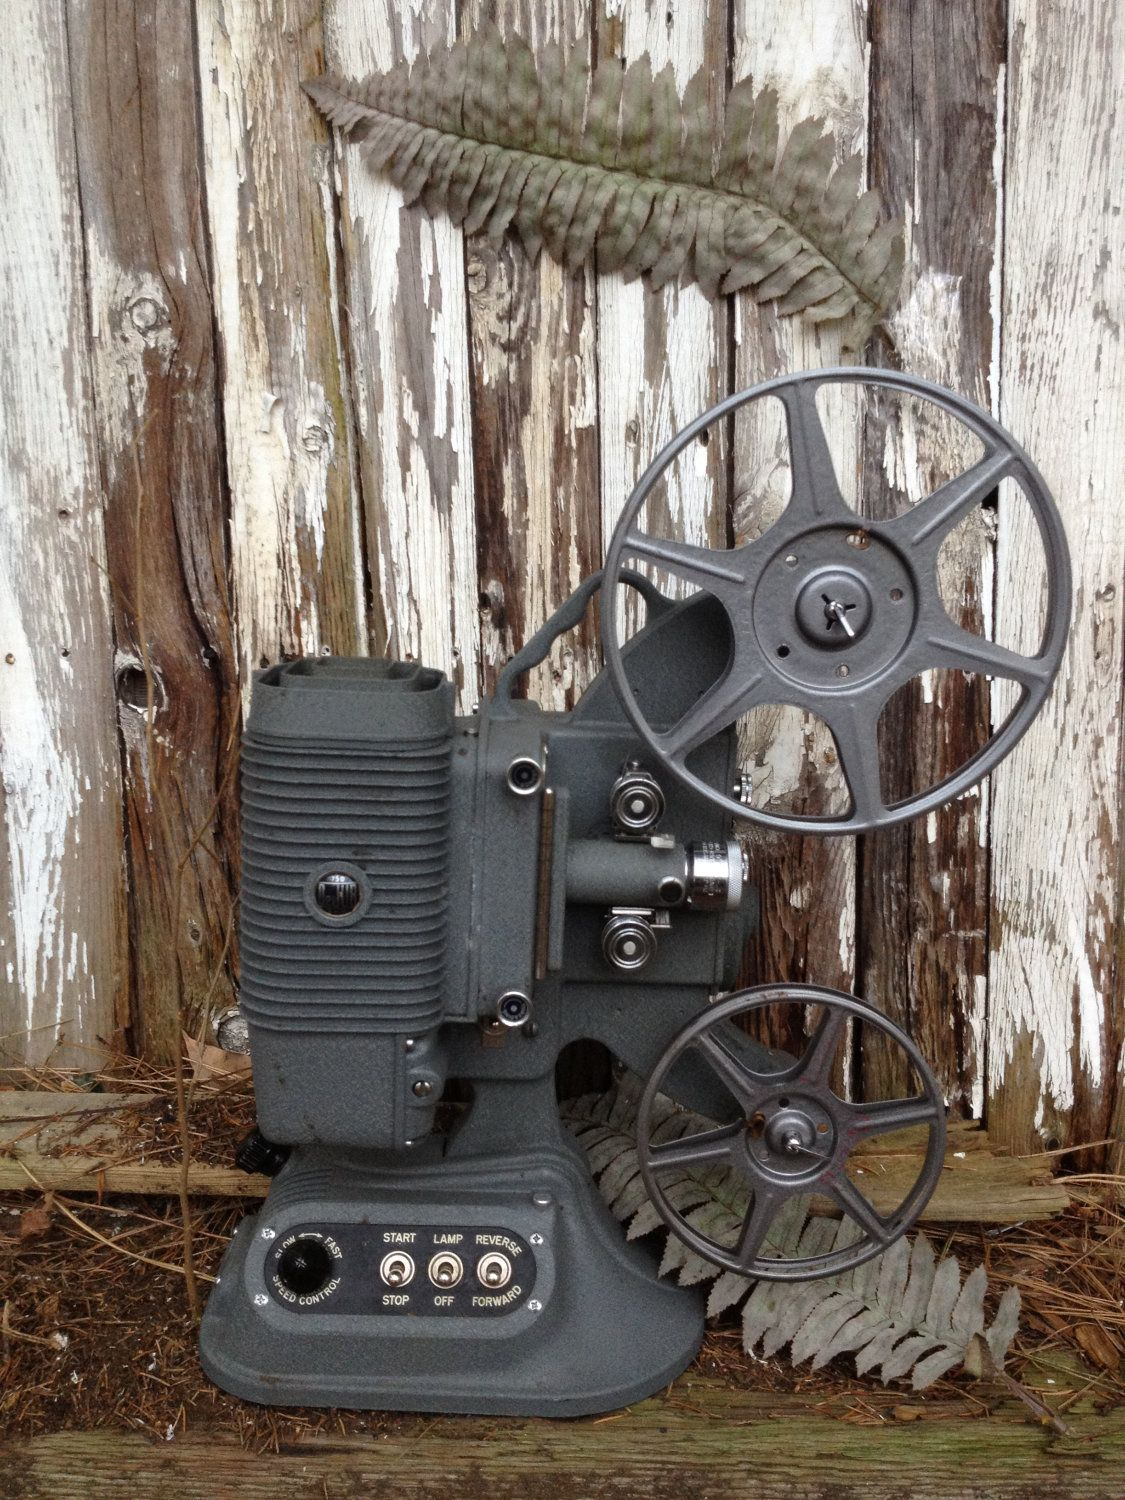 Vintage Film Projector/DeJur 8MM Film Projector/Steampunk Decor/Industrial Decor. $74.00, via Etsy.